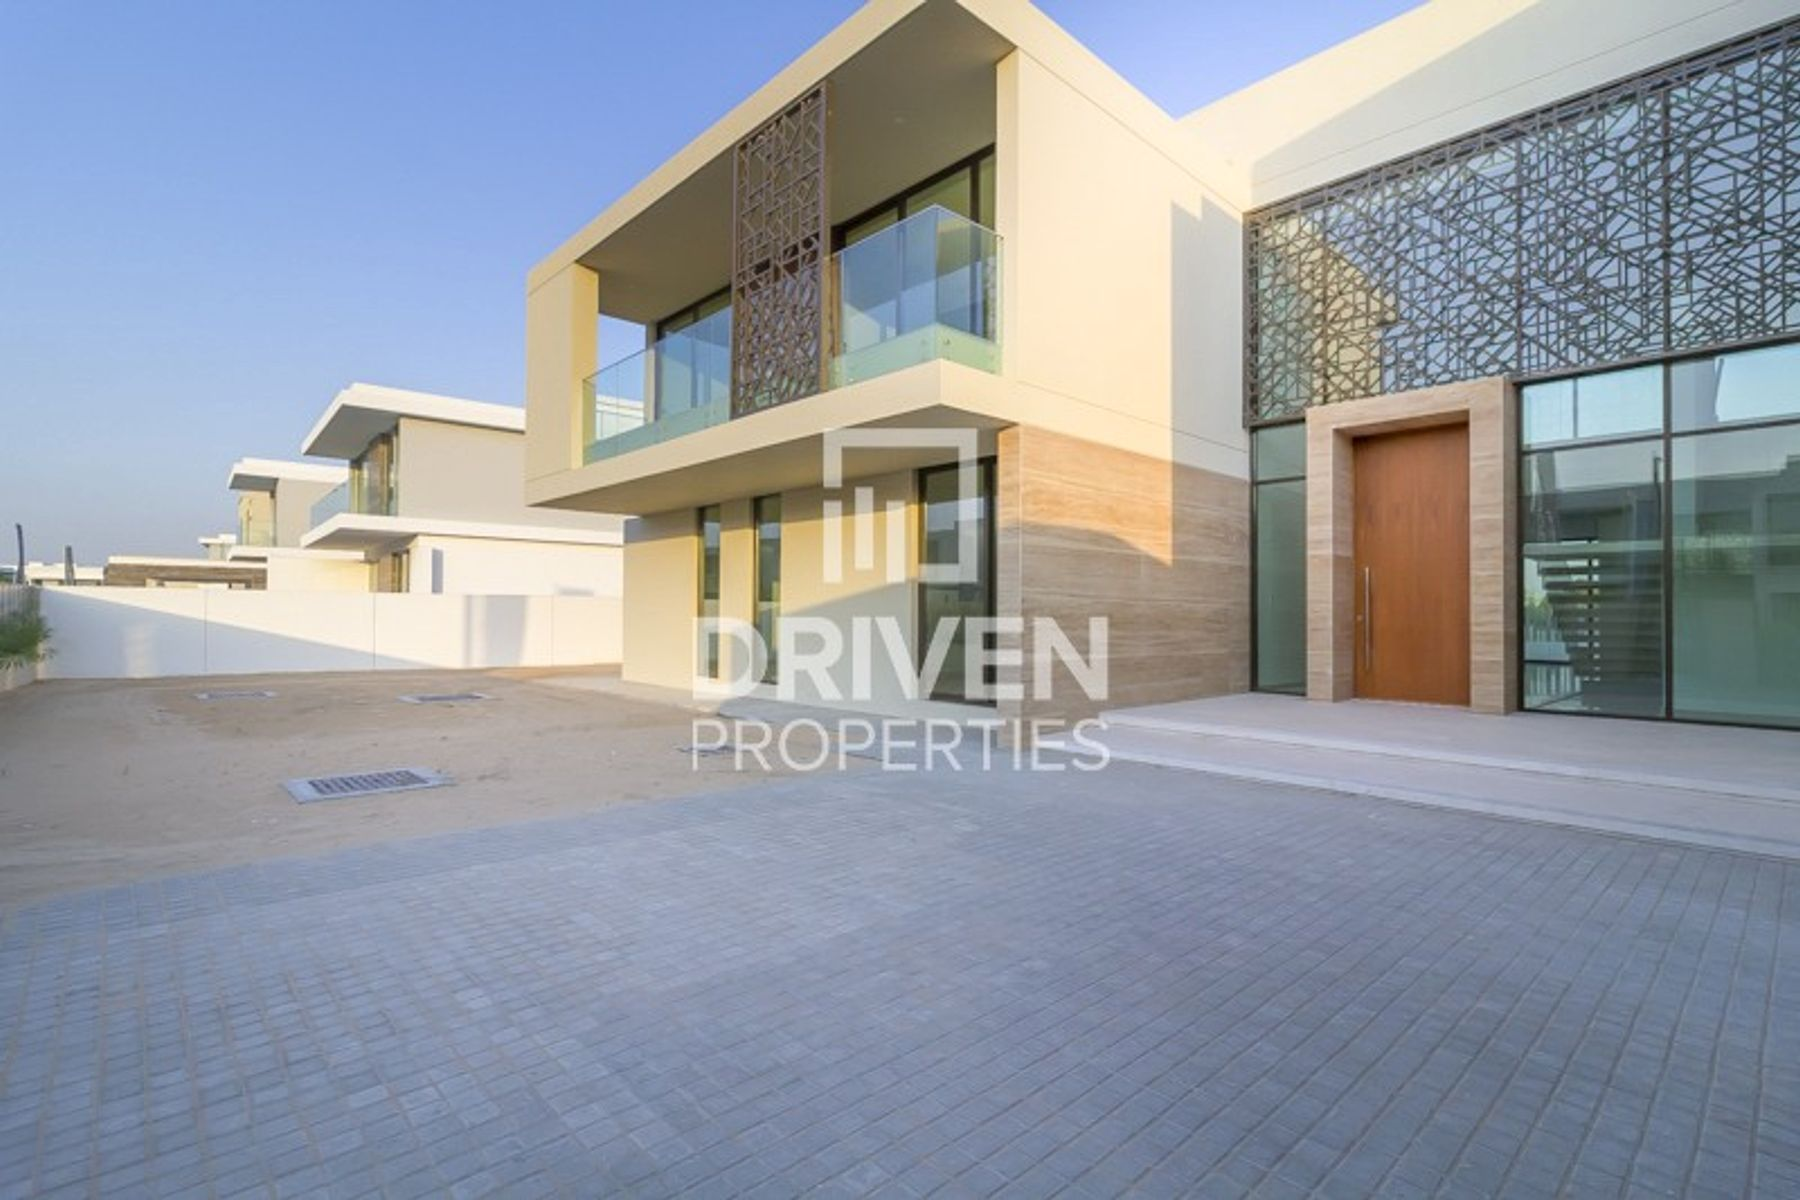 Vacant 6 Bed Villa with Golf Course View